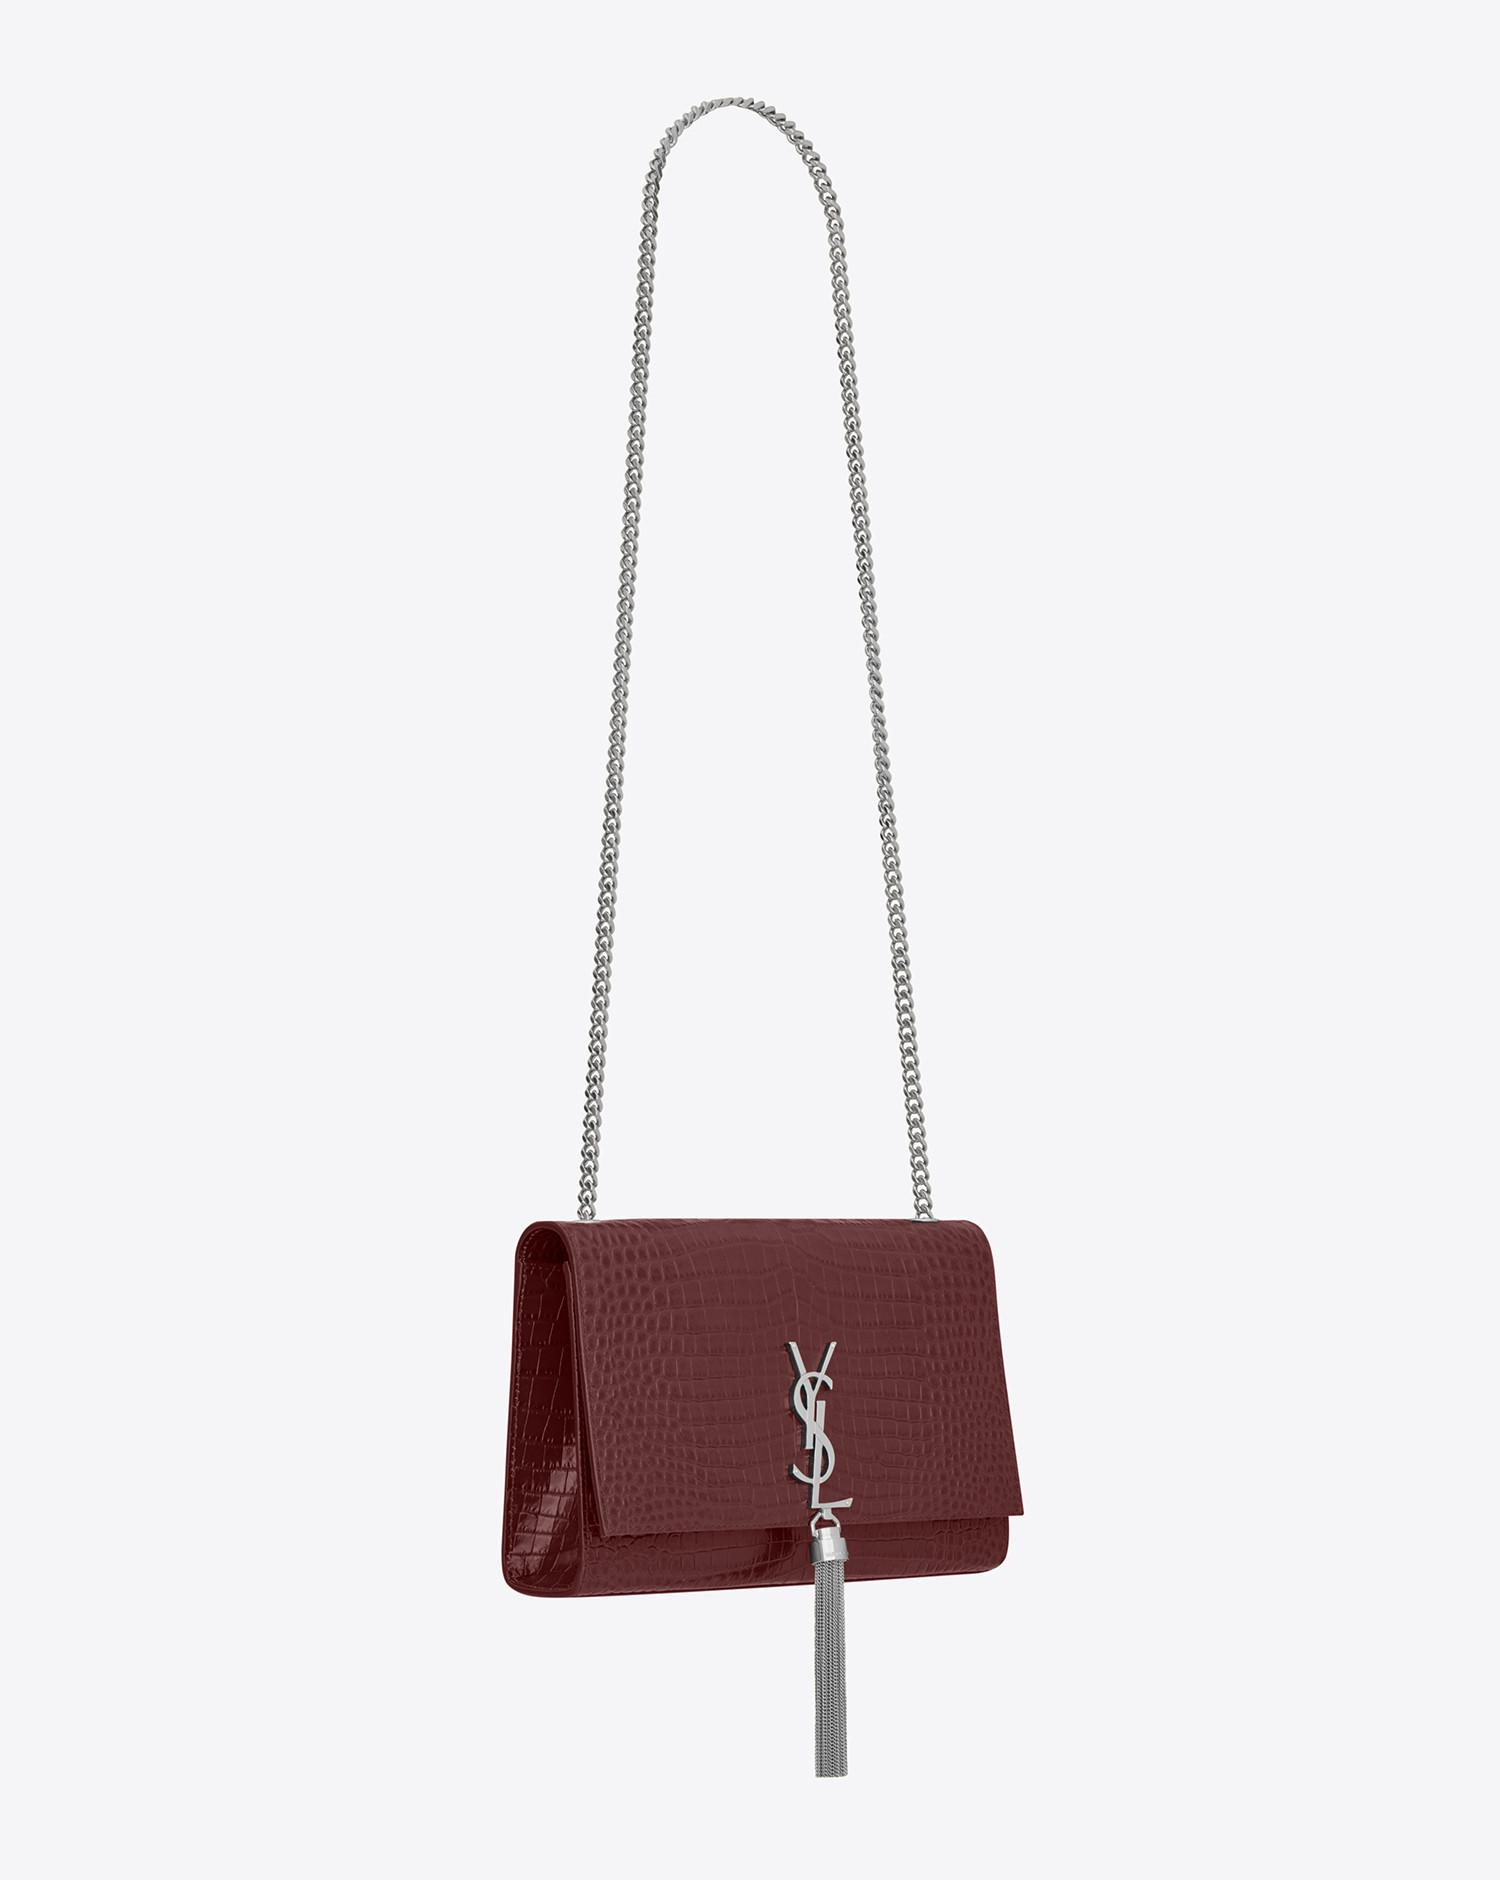 c011e5a295 Saint Laurent. Women s Red Classic Medium Kate Monogram Croc-Embossed  Leather Shoulder Bag